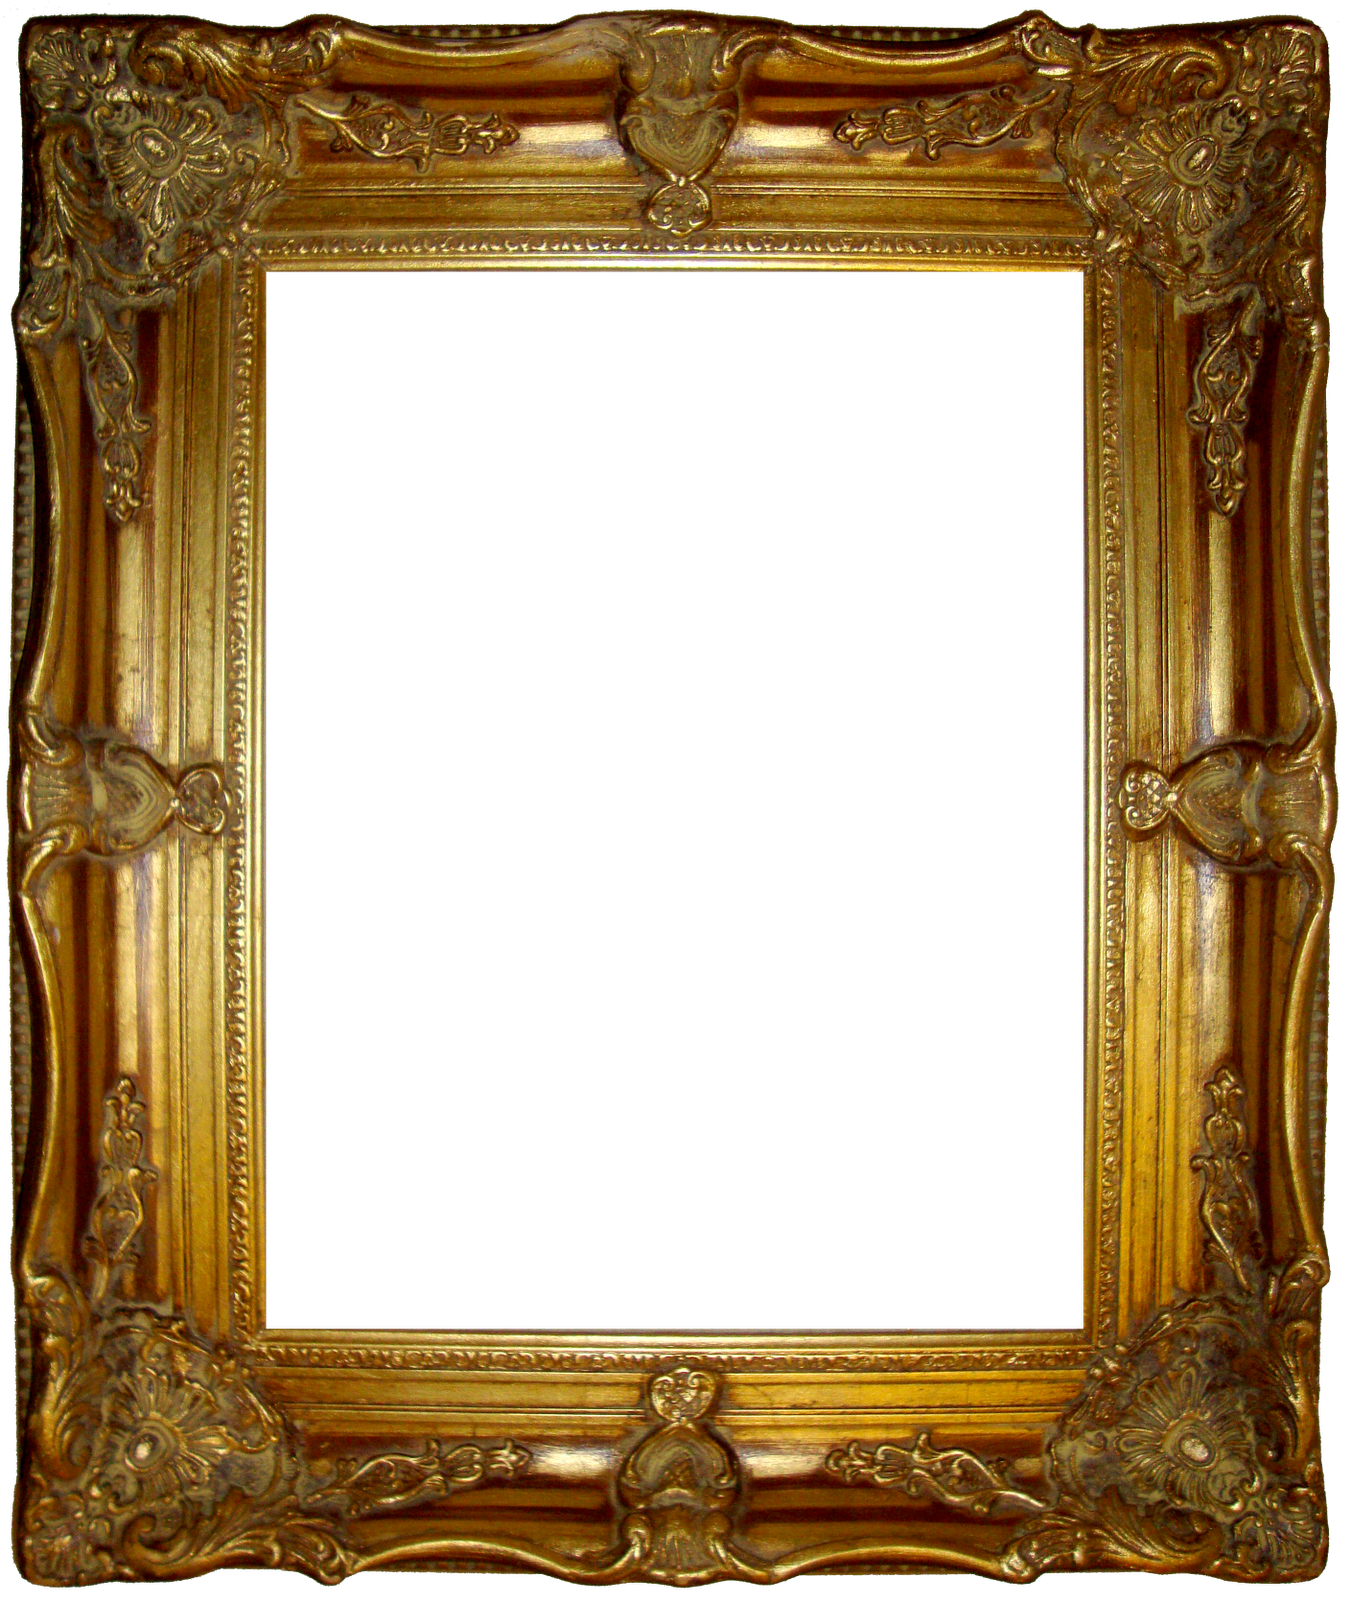 Frames Online 13 Free Digital Scrapbooking Antique Ornate Photo Frames